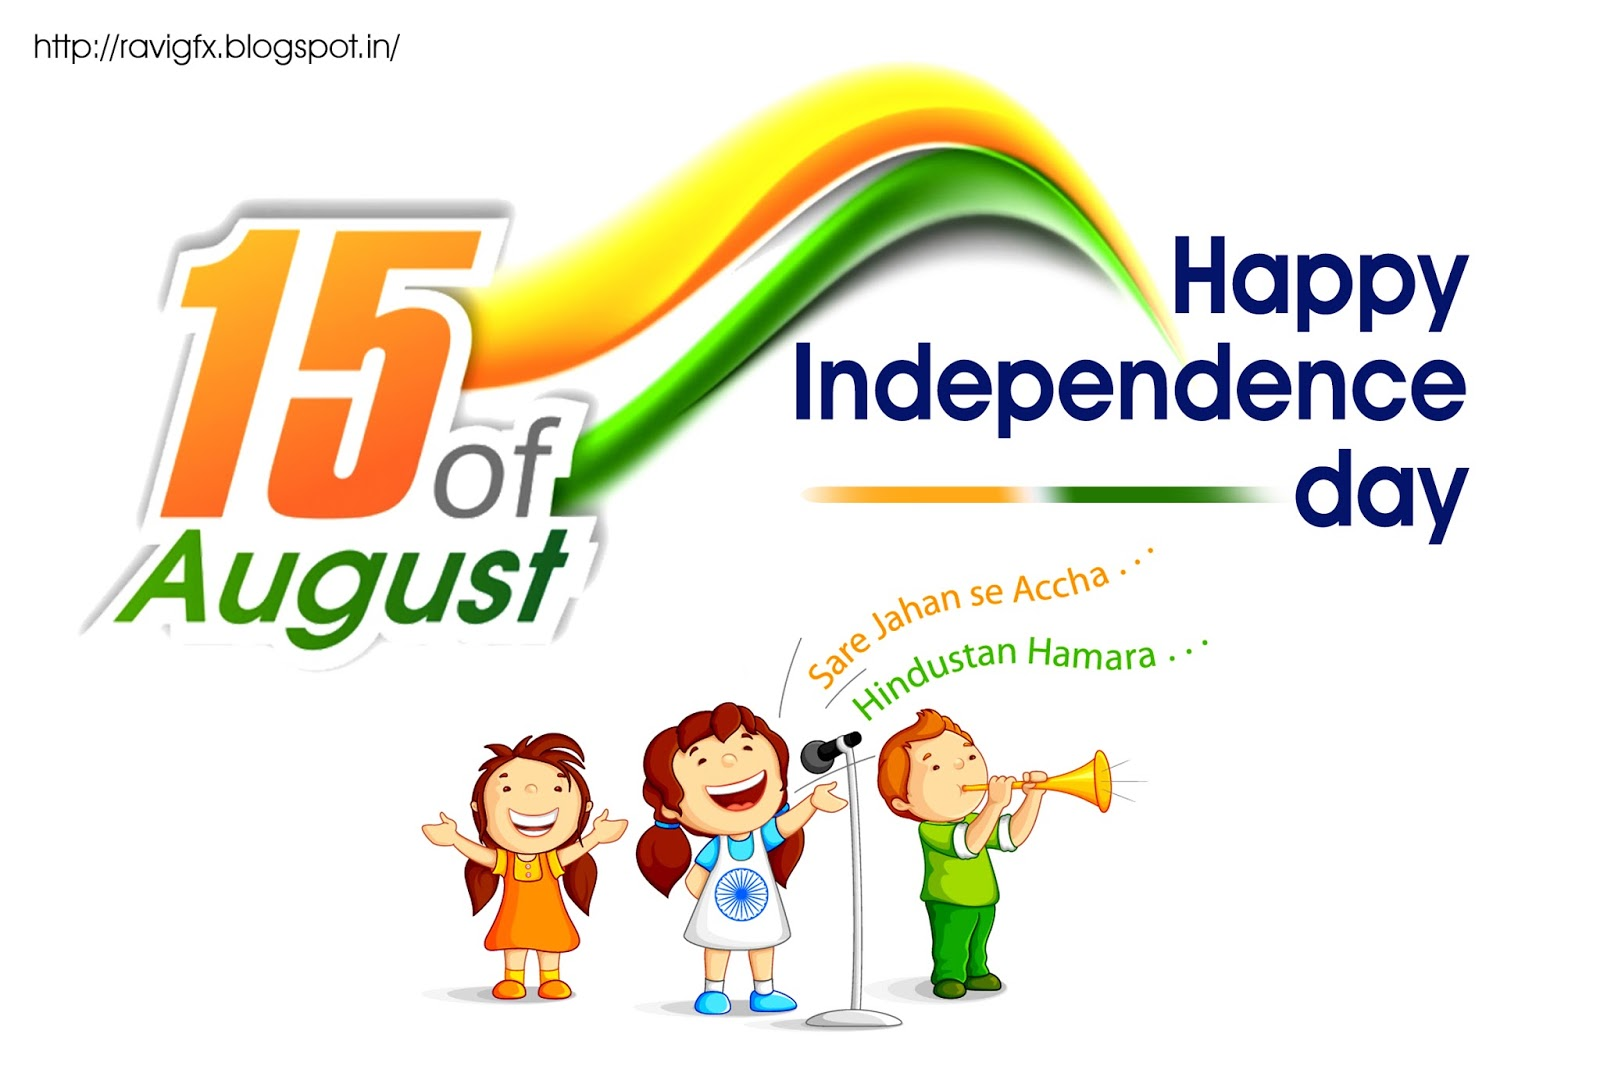 New telugu indian independence day wishes and messages for happy independence day sayings greetings quotes wishes with kristyandbryce Gallery